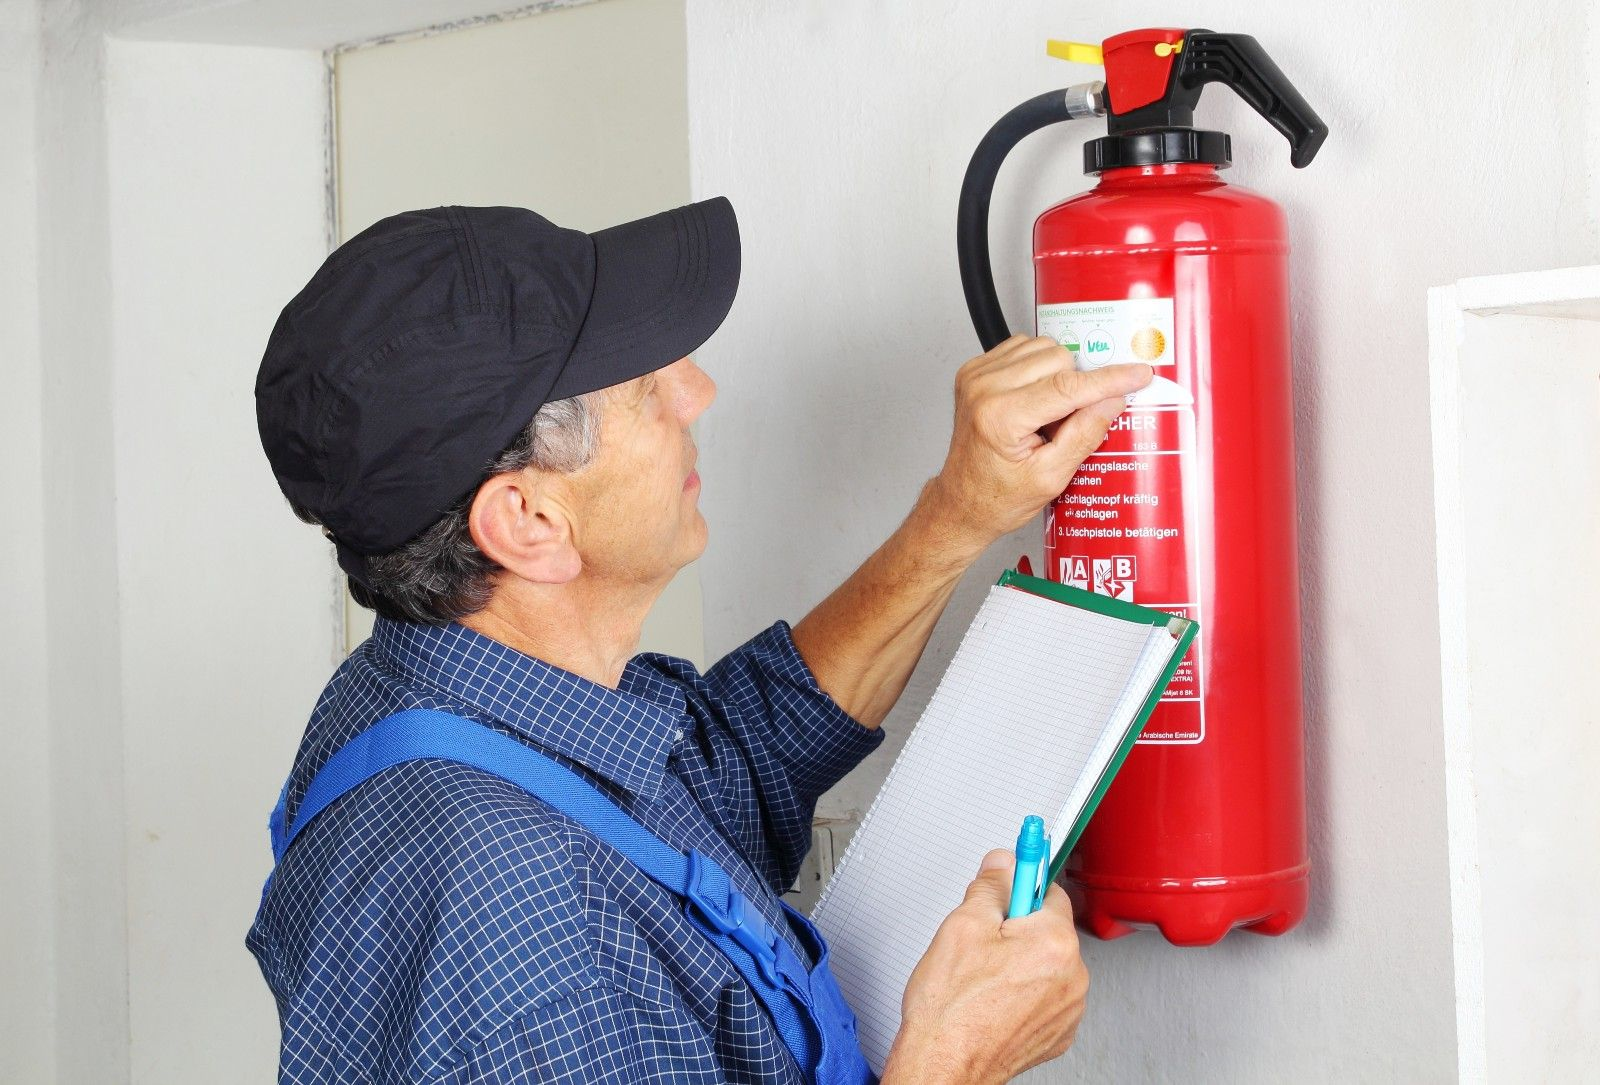 The best way to keep your home and family safe is to